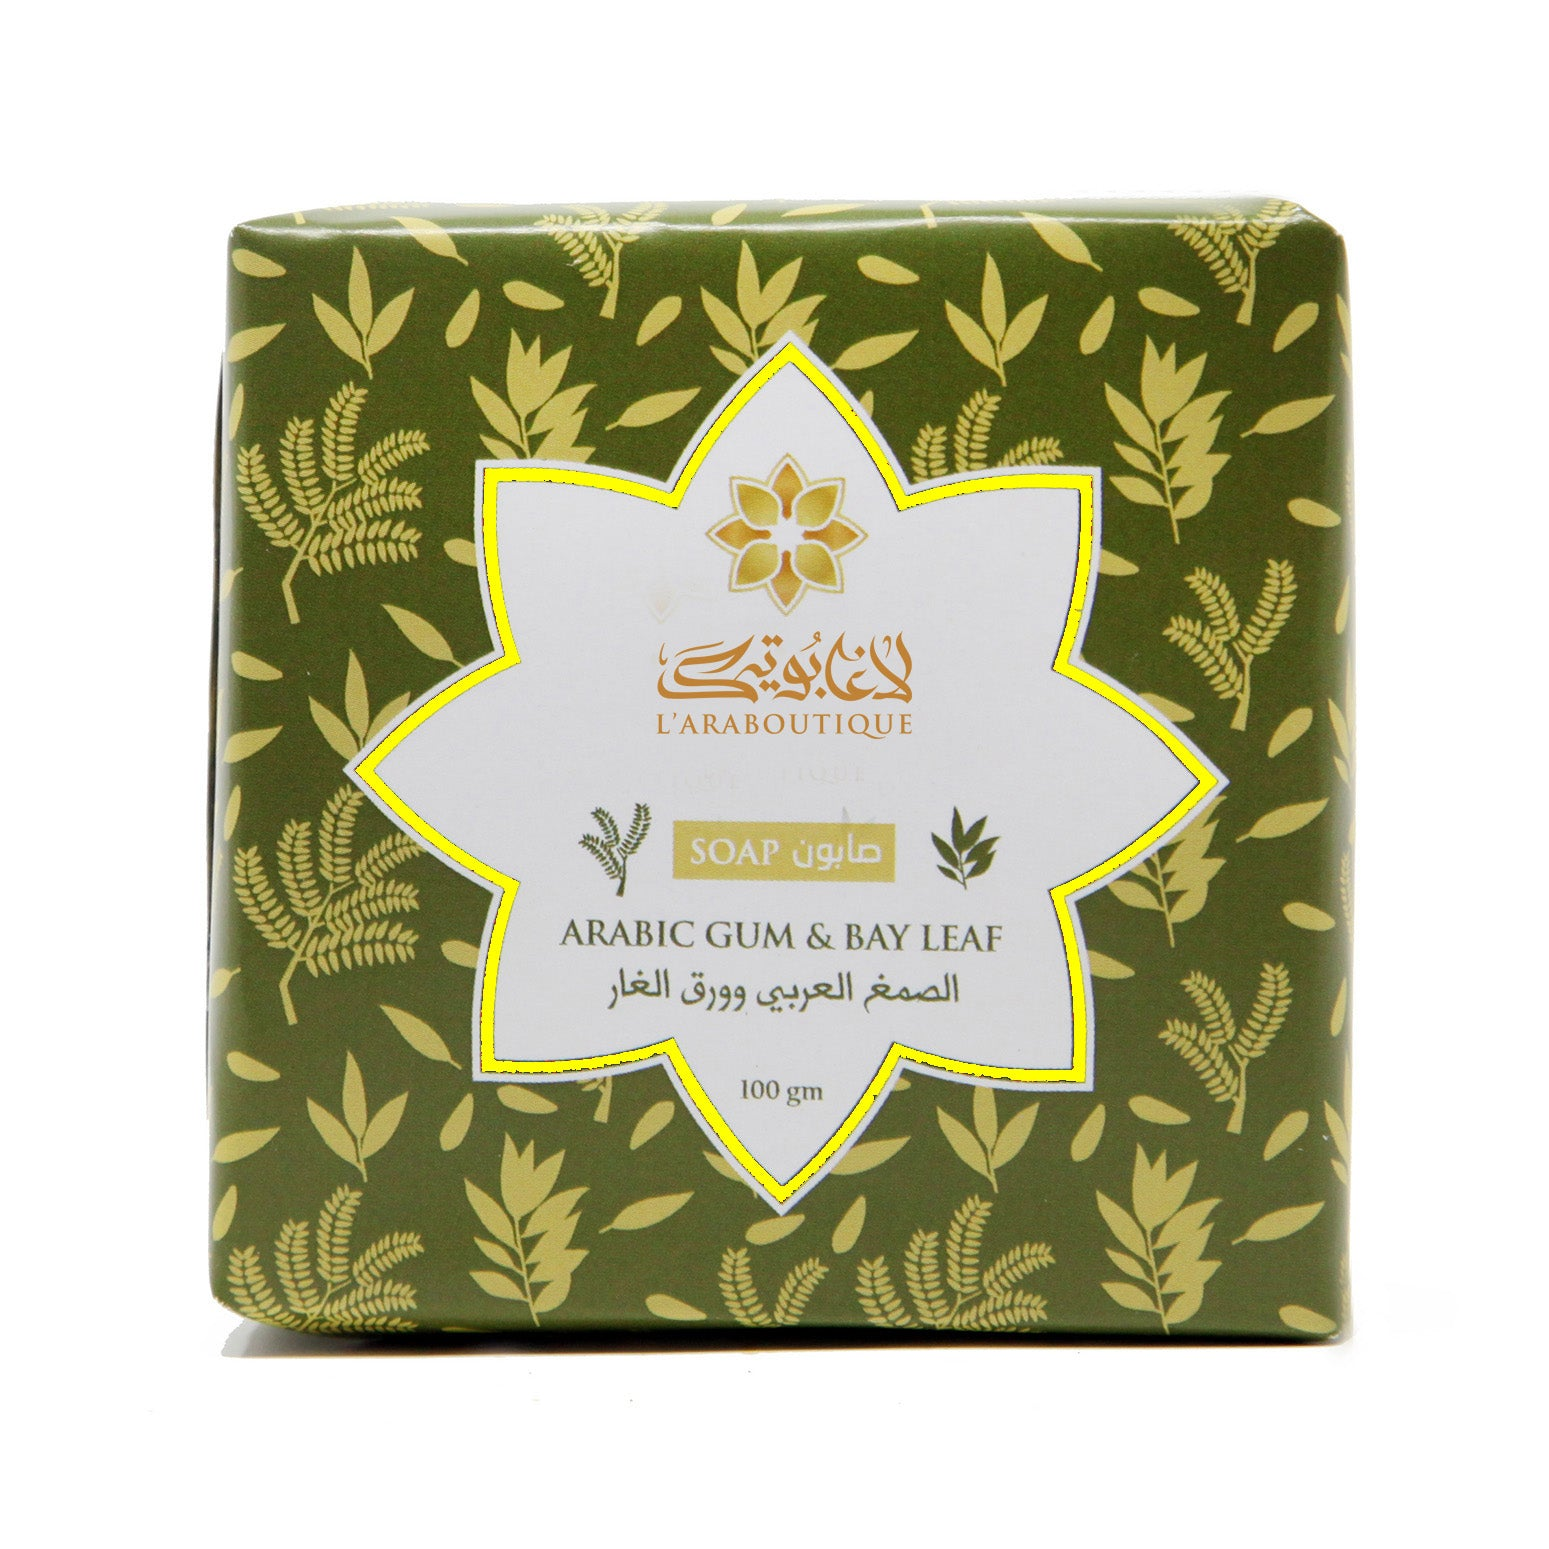 Arabic Gum and Bay Leaf Soap